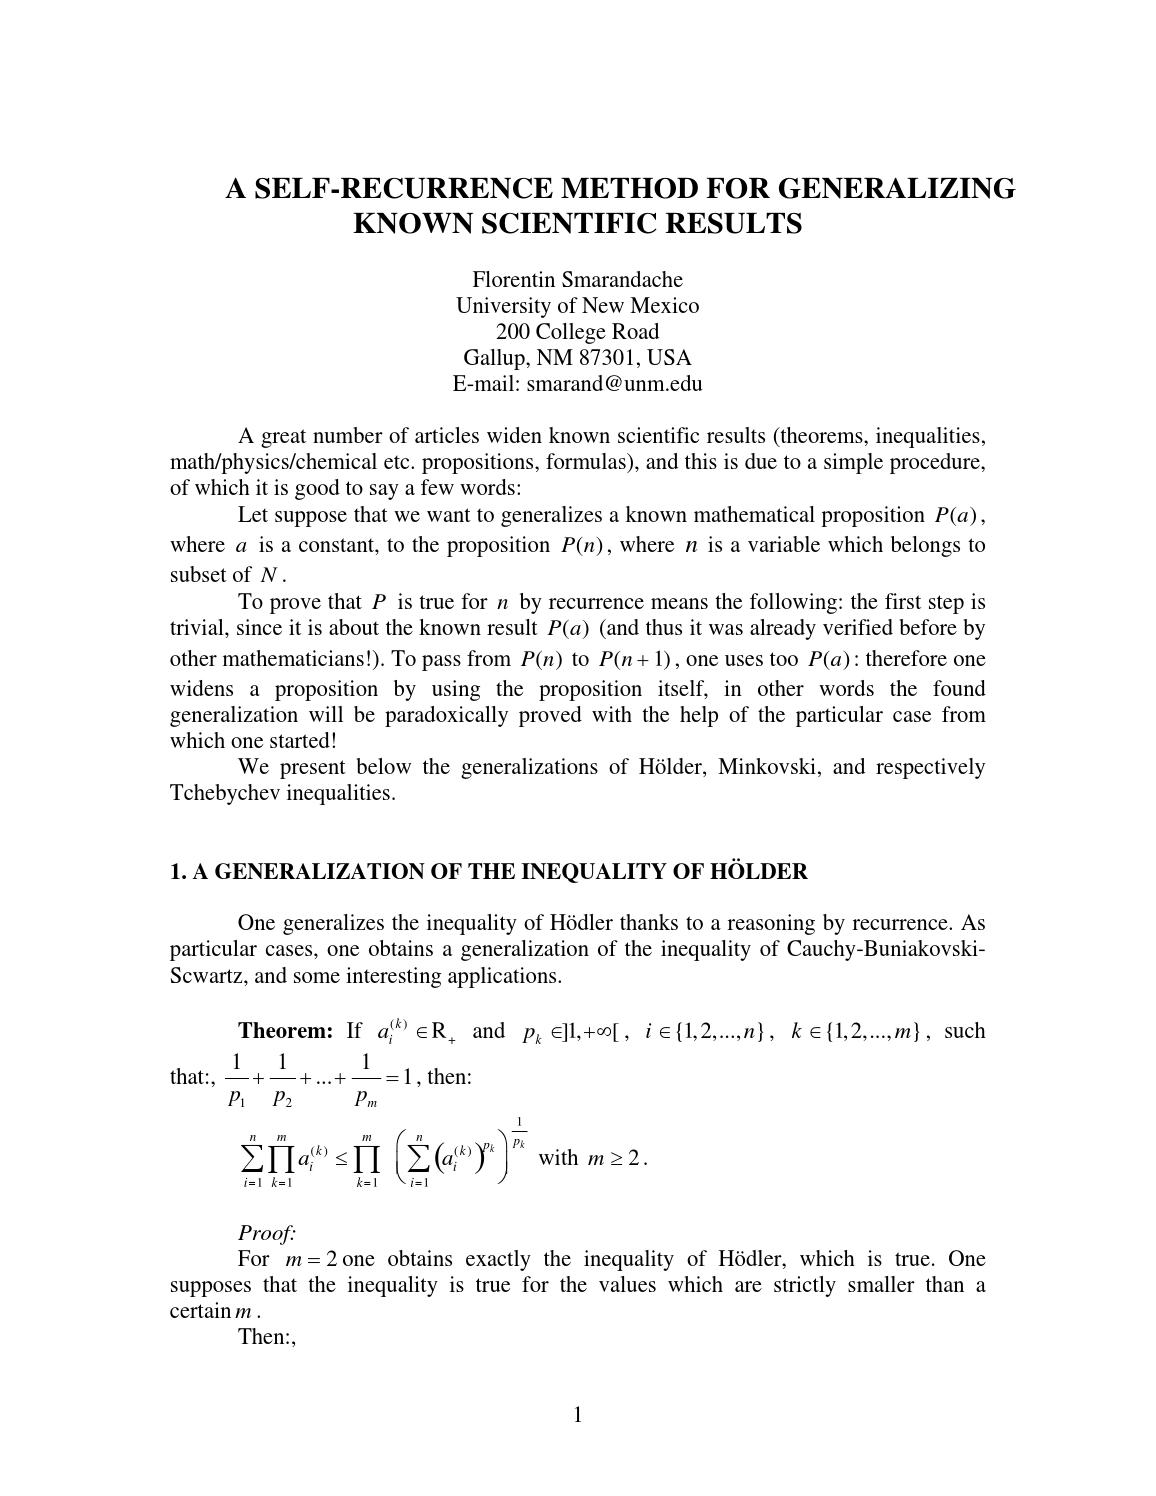 A SELF-RECURRENCE METHOD FOR GENERALIZING KNOWN SCIENTIFIC